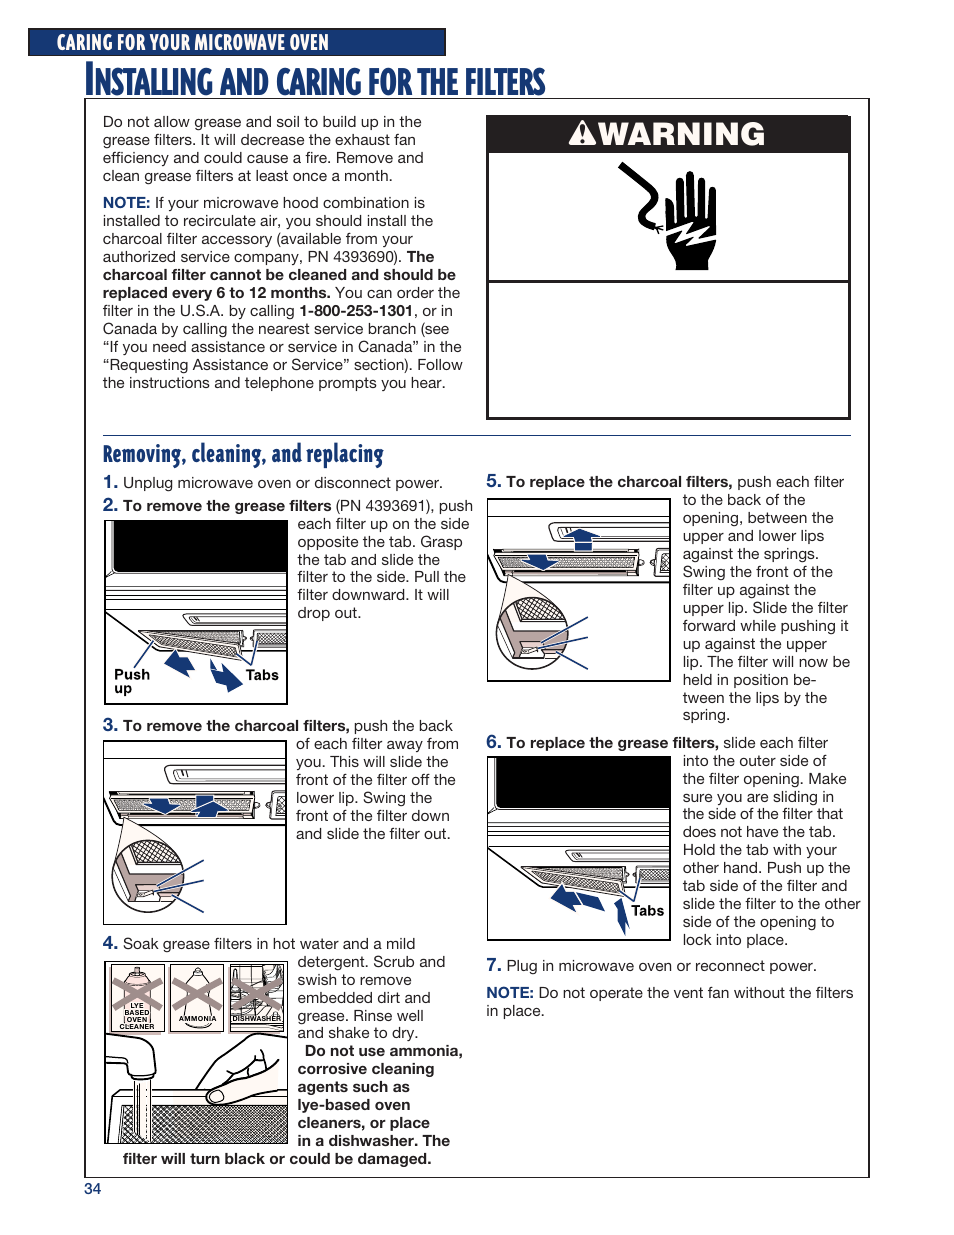 Nstalling, Caring, Filters | Whirlpool YMH6140XF User Manual | Page ...